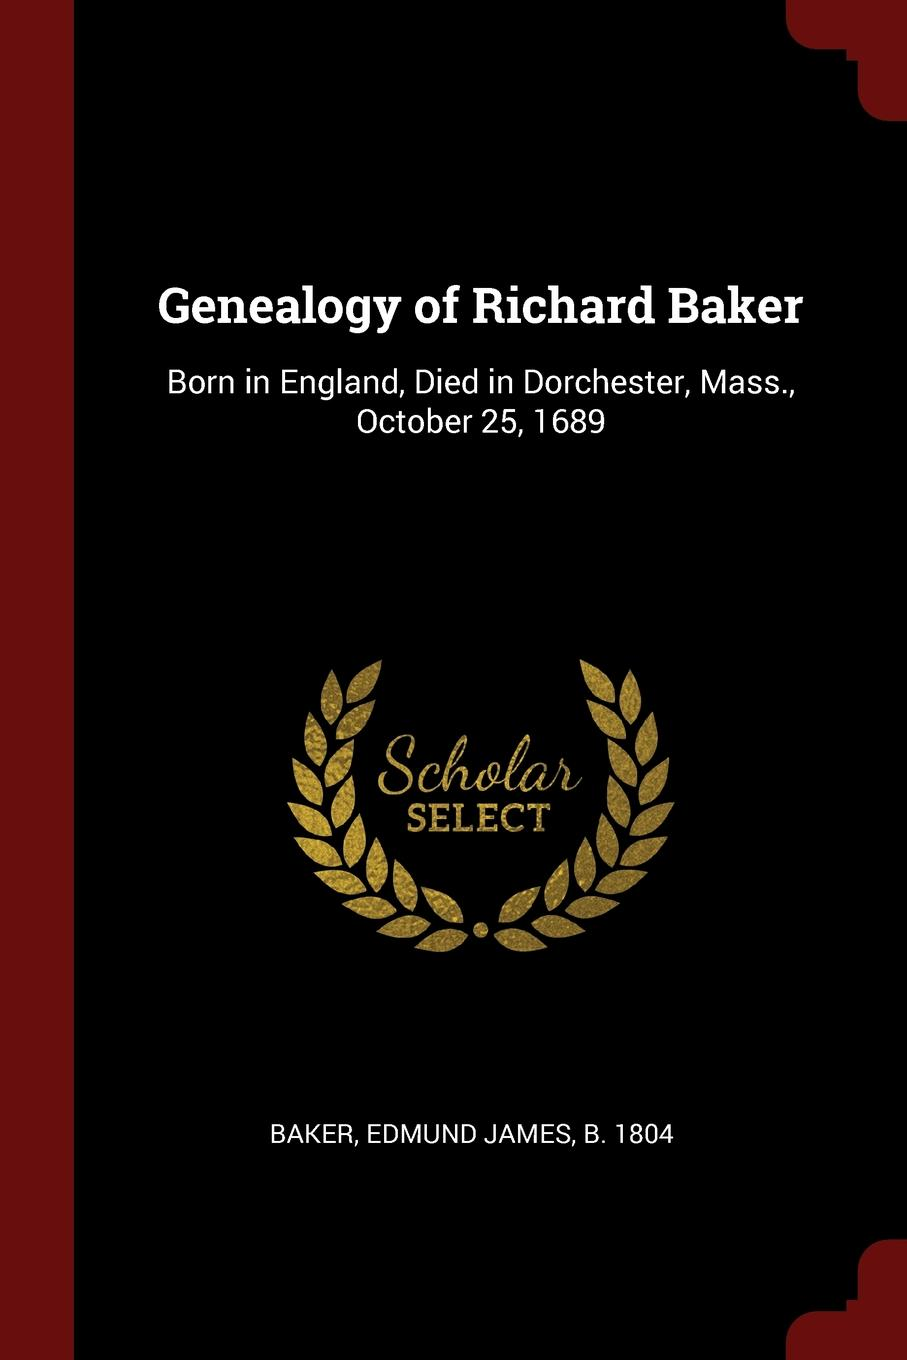 Edmund James Baker Genealogy of Richard Baker. Born in England, Died in Dorchester, Mass., October 25, 1689